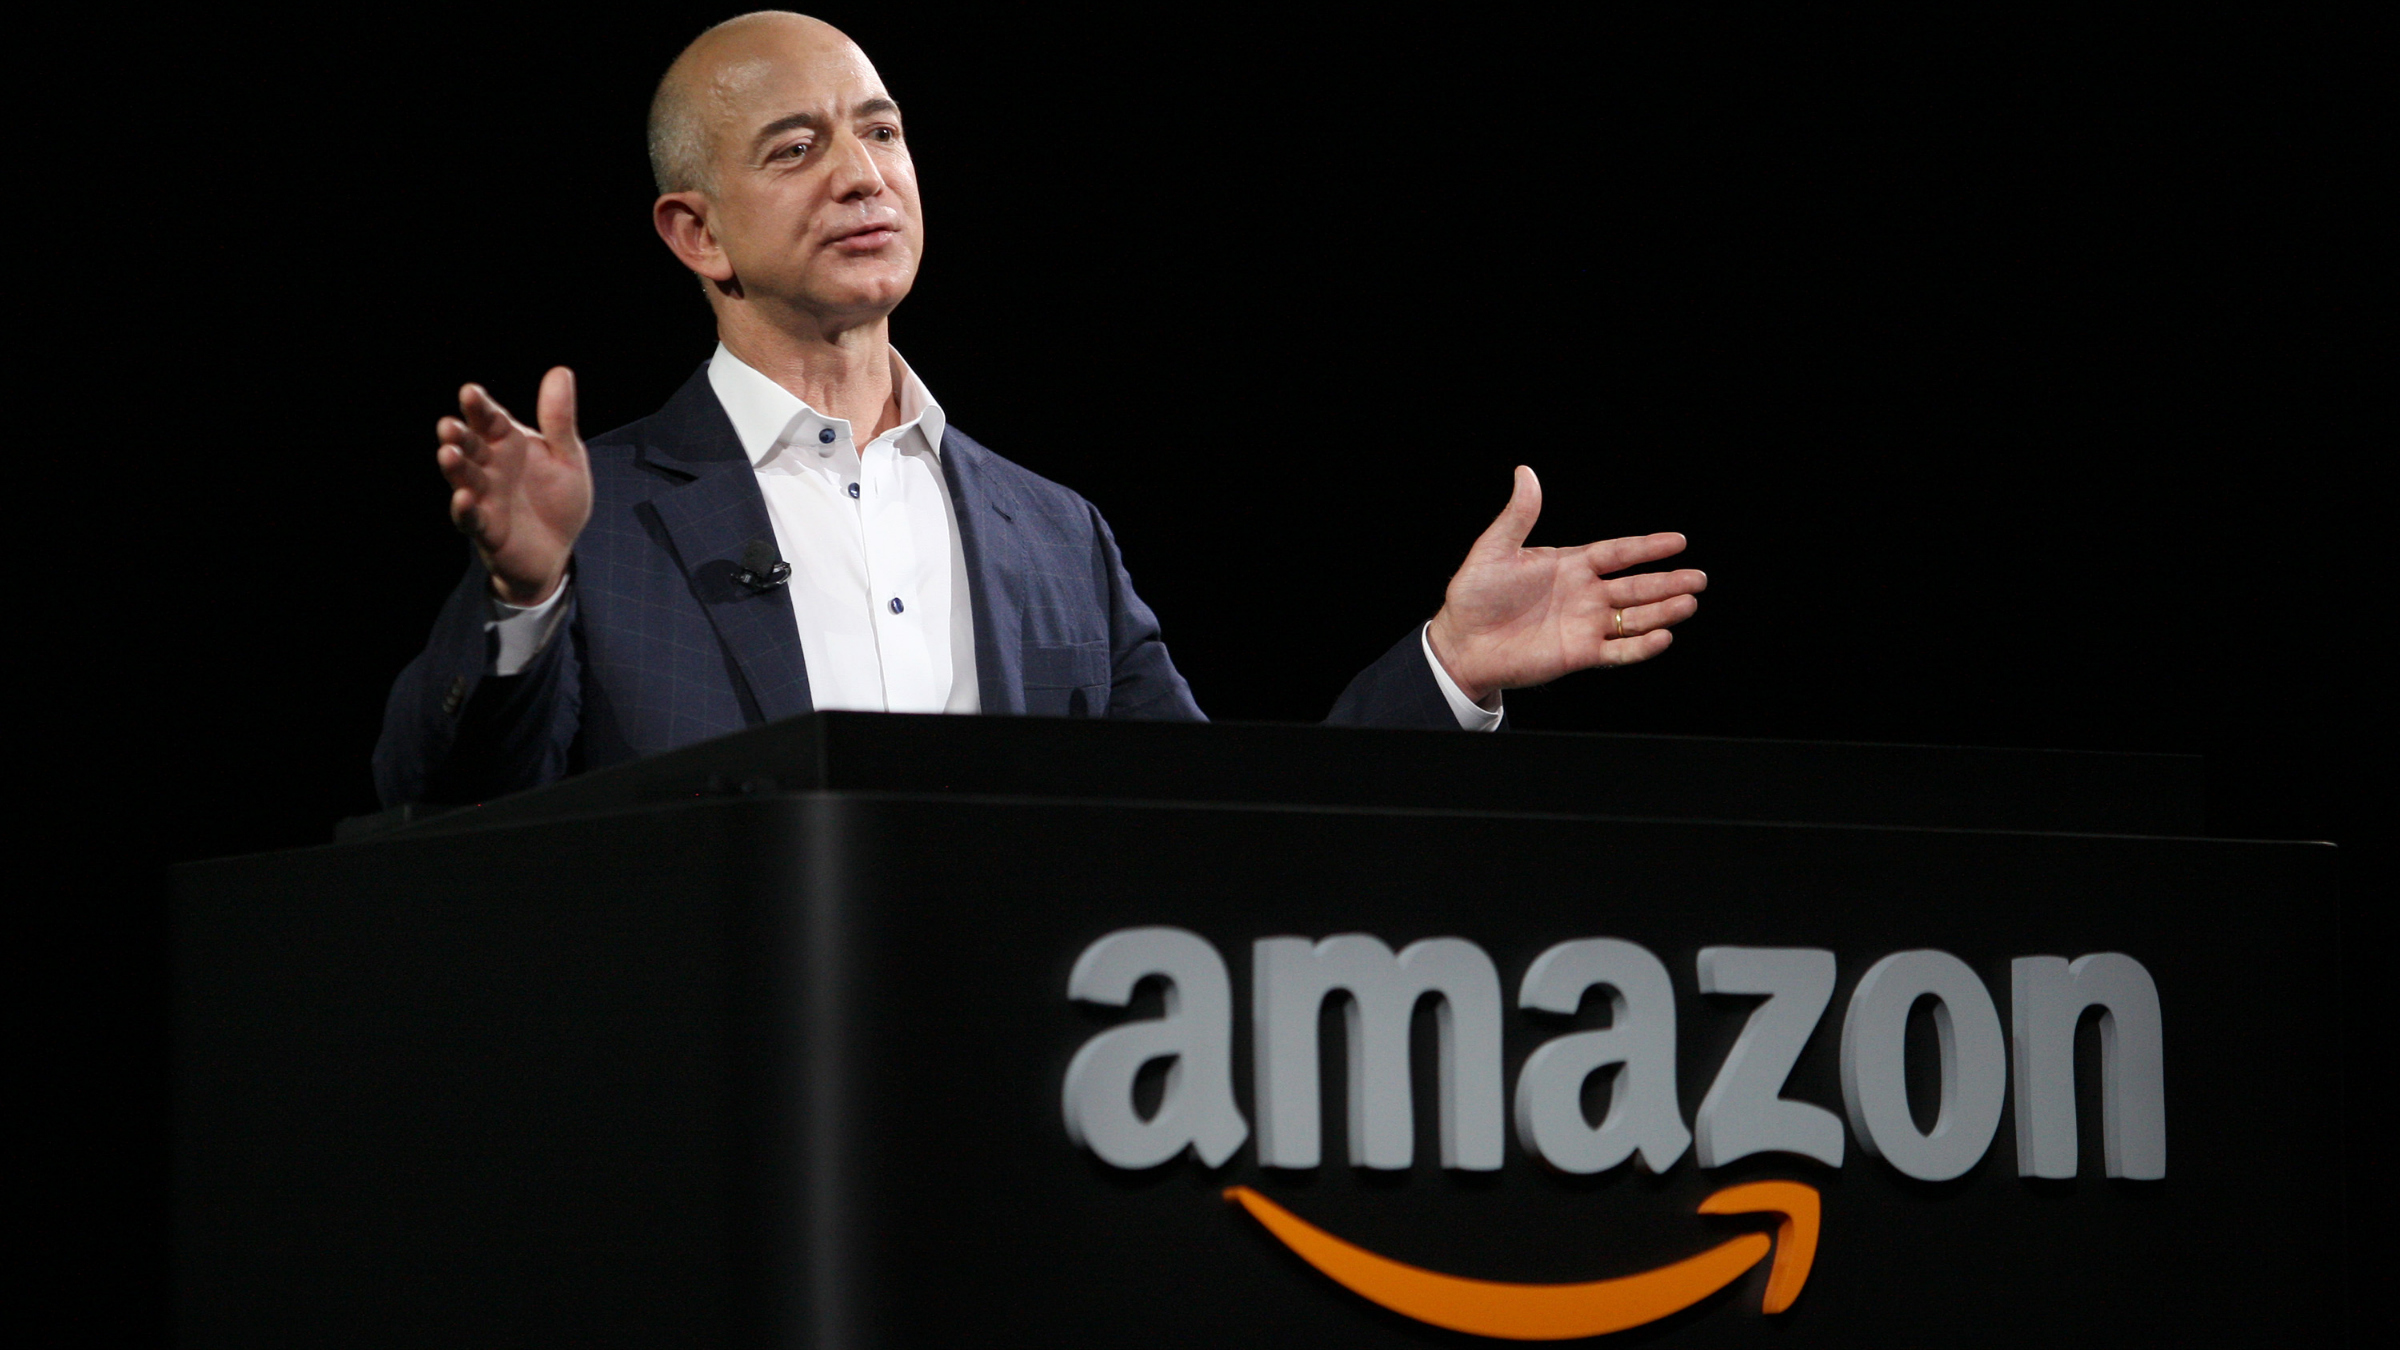 Amazon CEO Jim Bezos